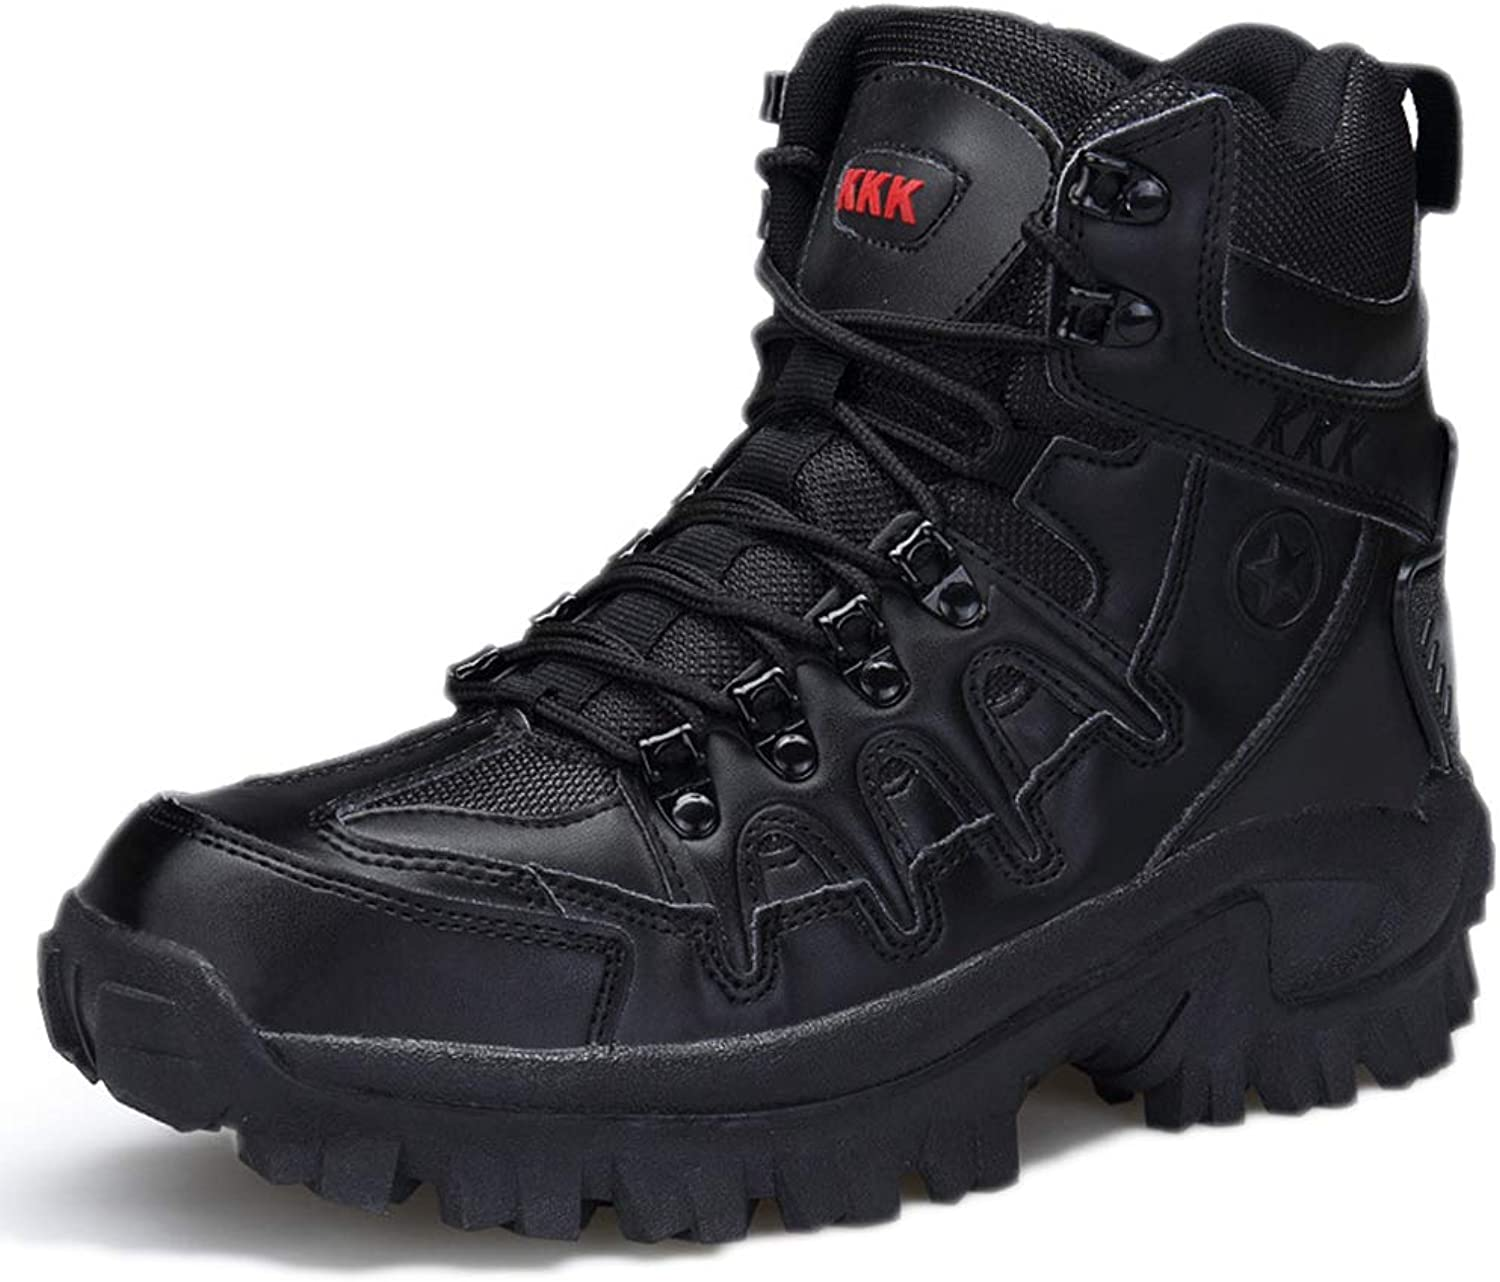 Snfgoij Tactical Military Boots Men Sand Desert Breathable Lightweight Autumn high-top Outdoor Combat Boots wear-Resistant Military Boots